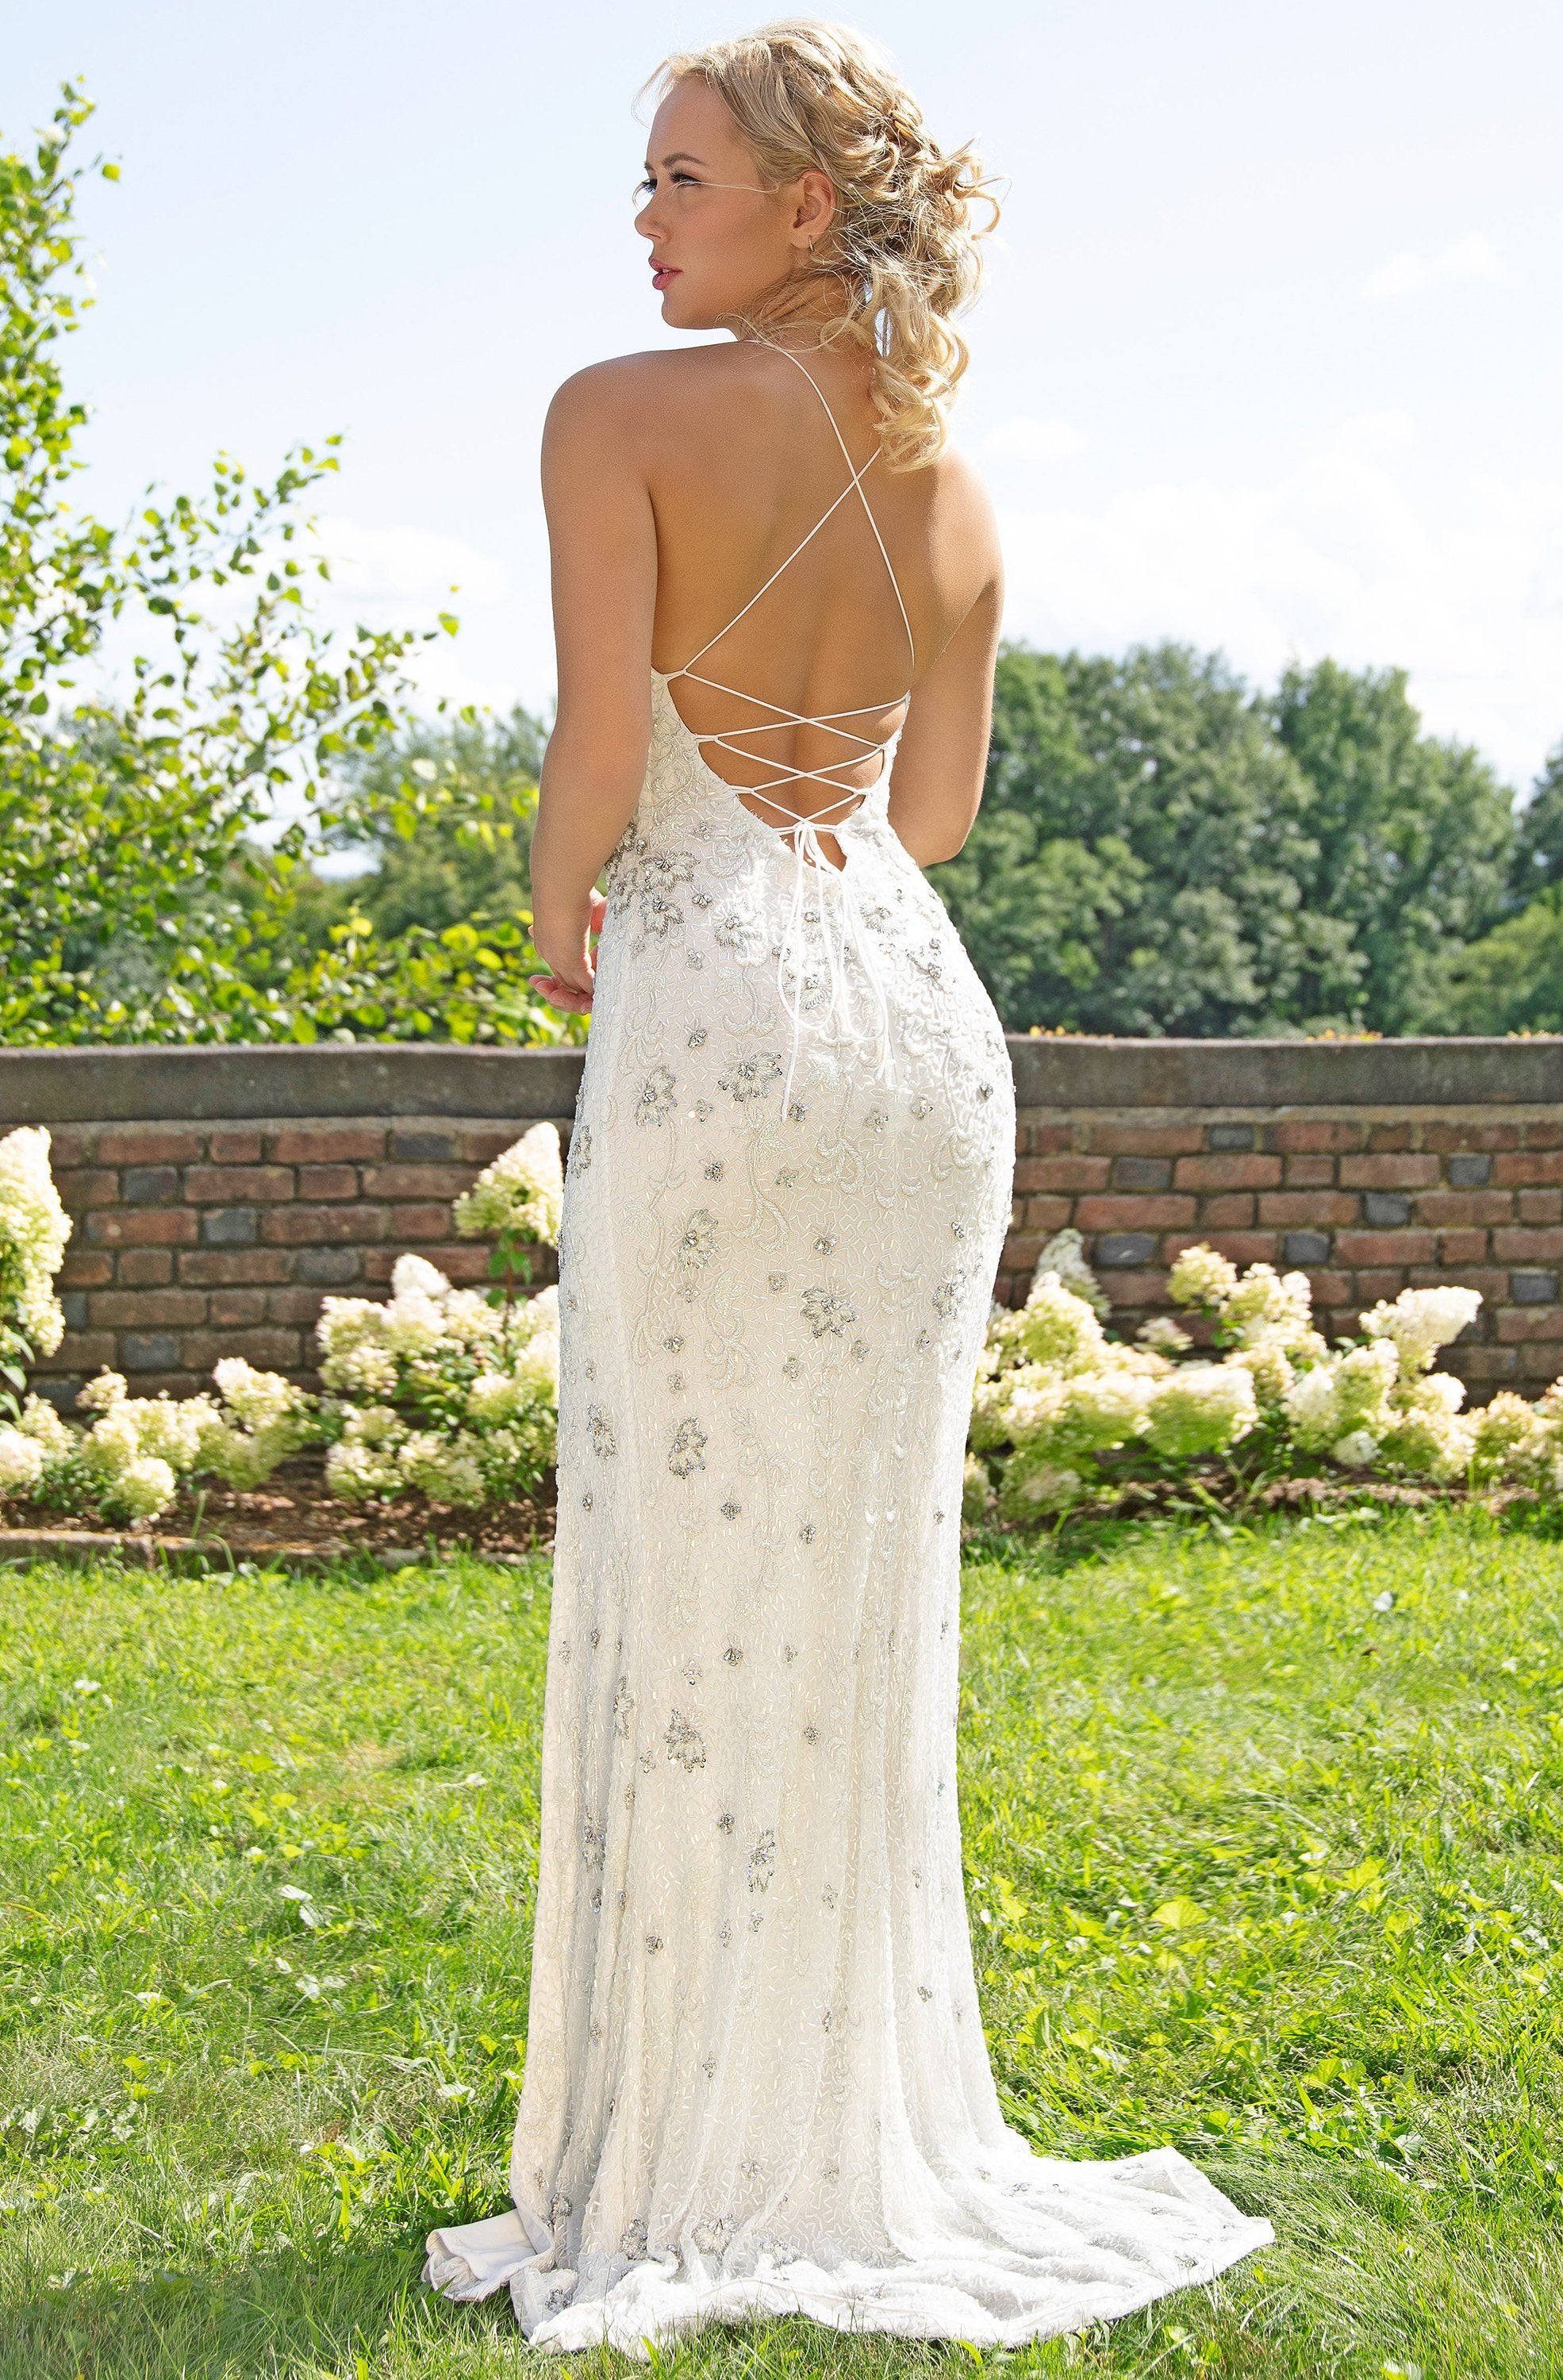 Primavera Couture - 3229 Floral Beaded High Slit Long Gown In White